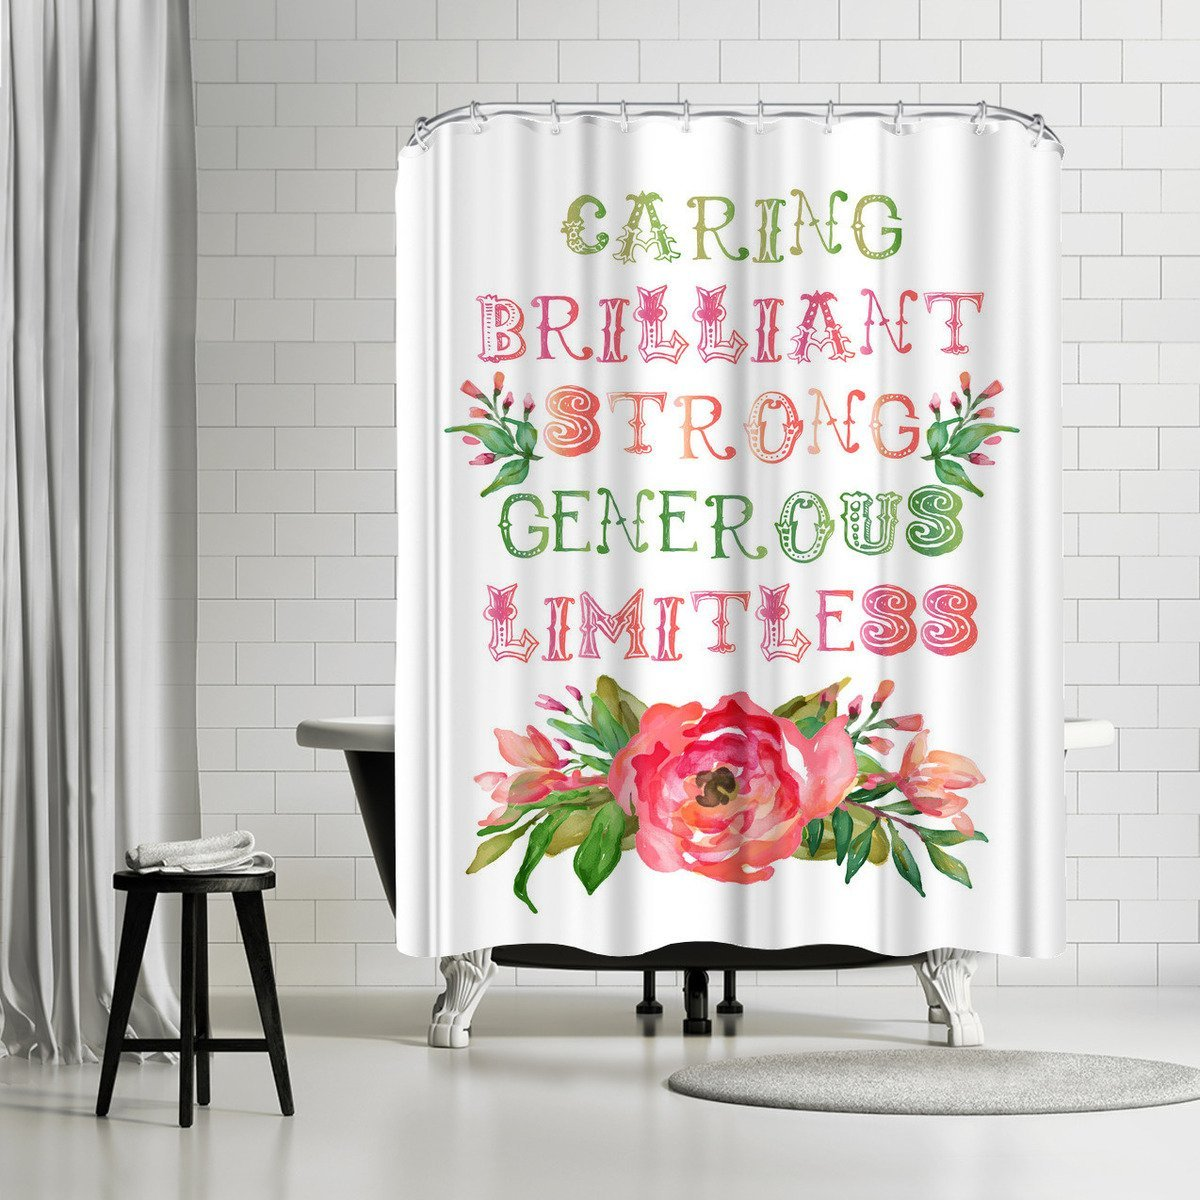 Caring Brilliant Floral by Amy Brinkman Shower Curtain - Shower Curtain - Americanflat